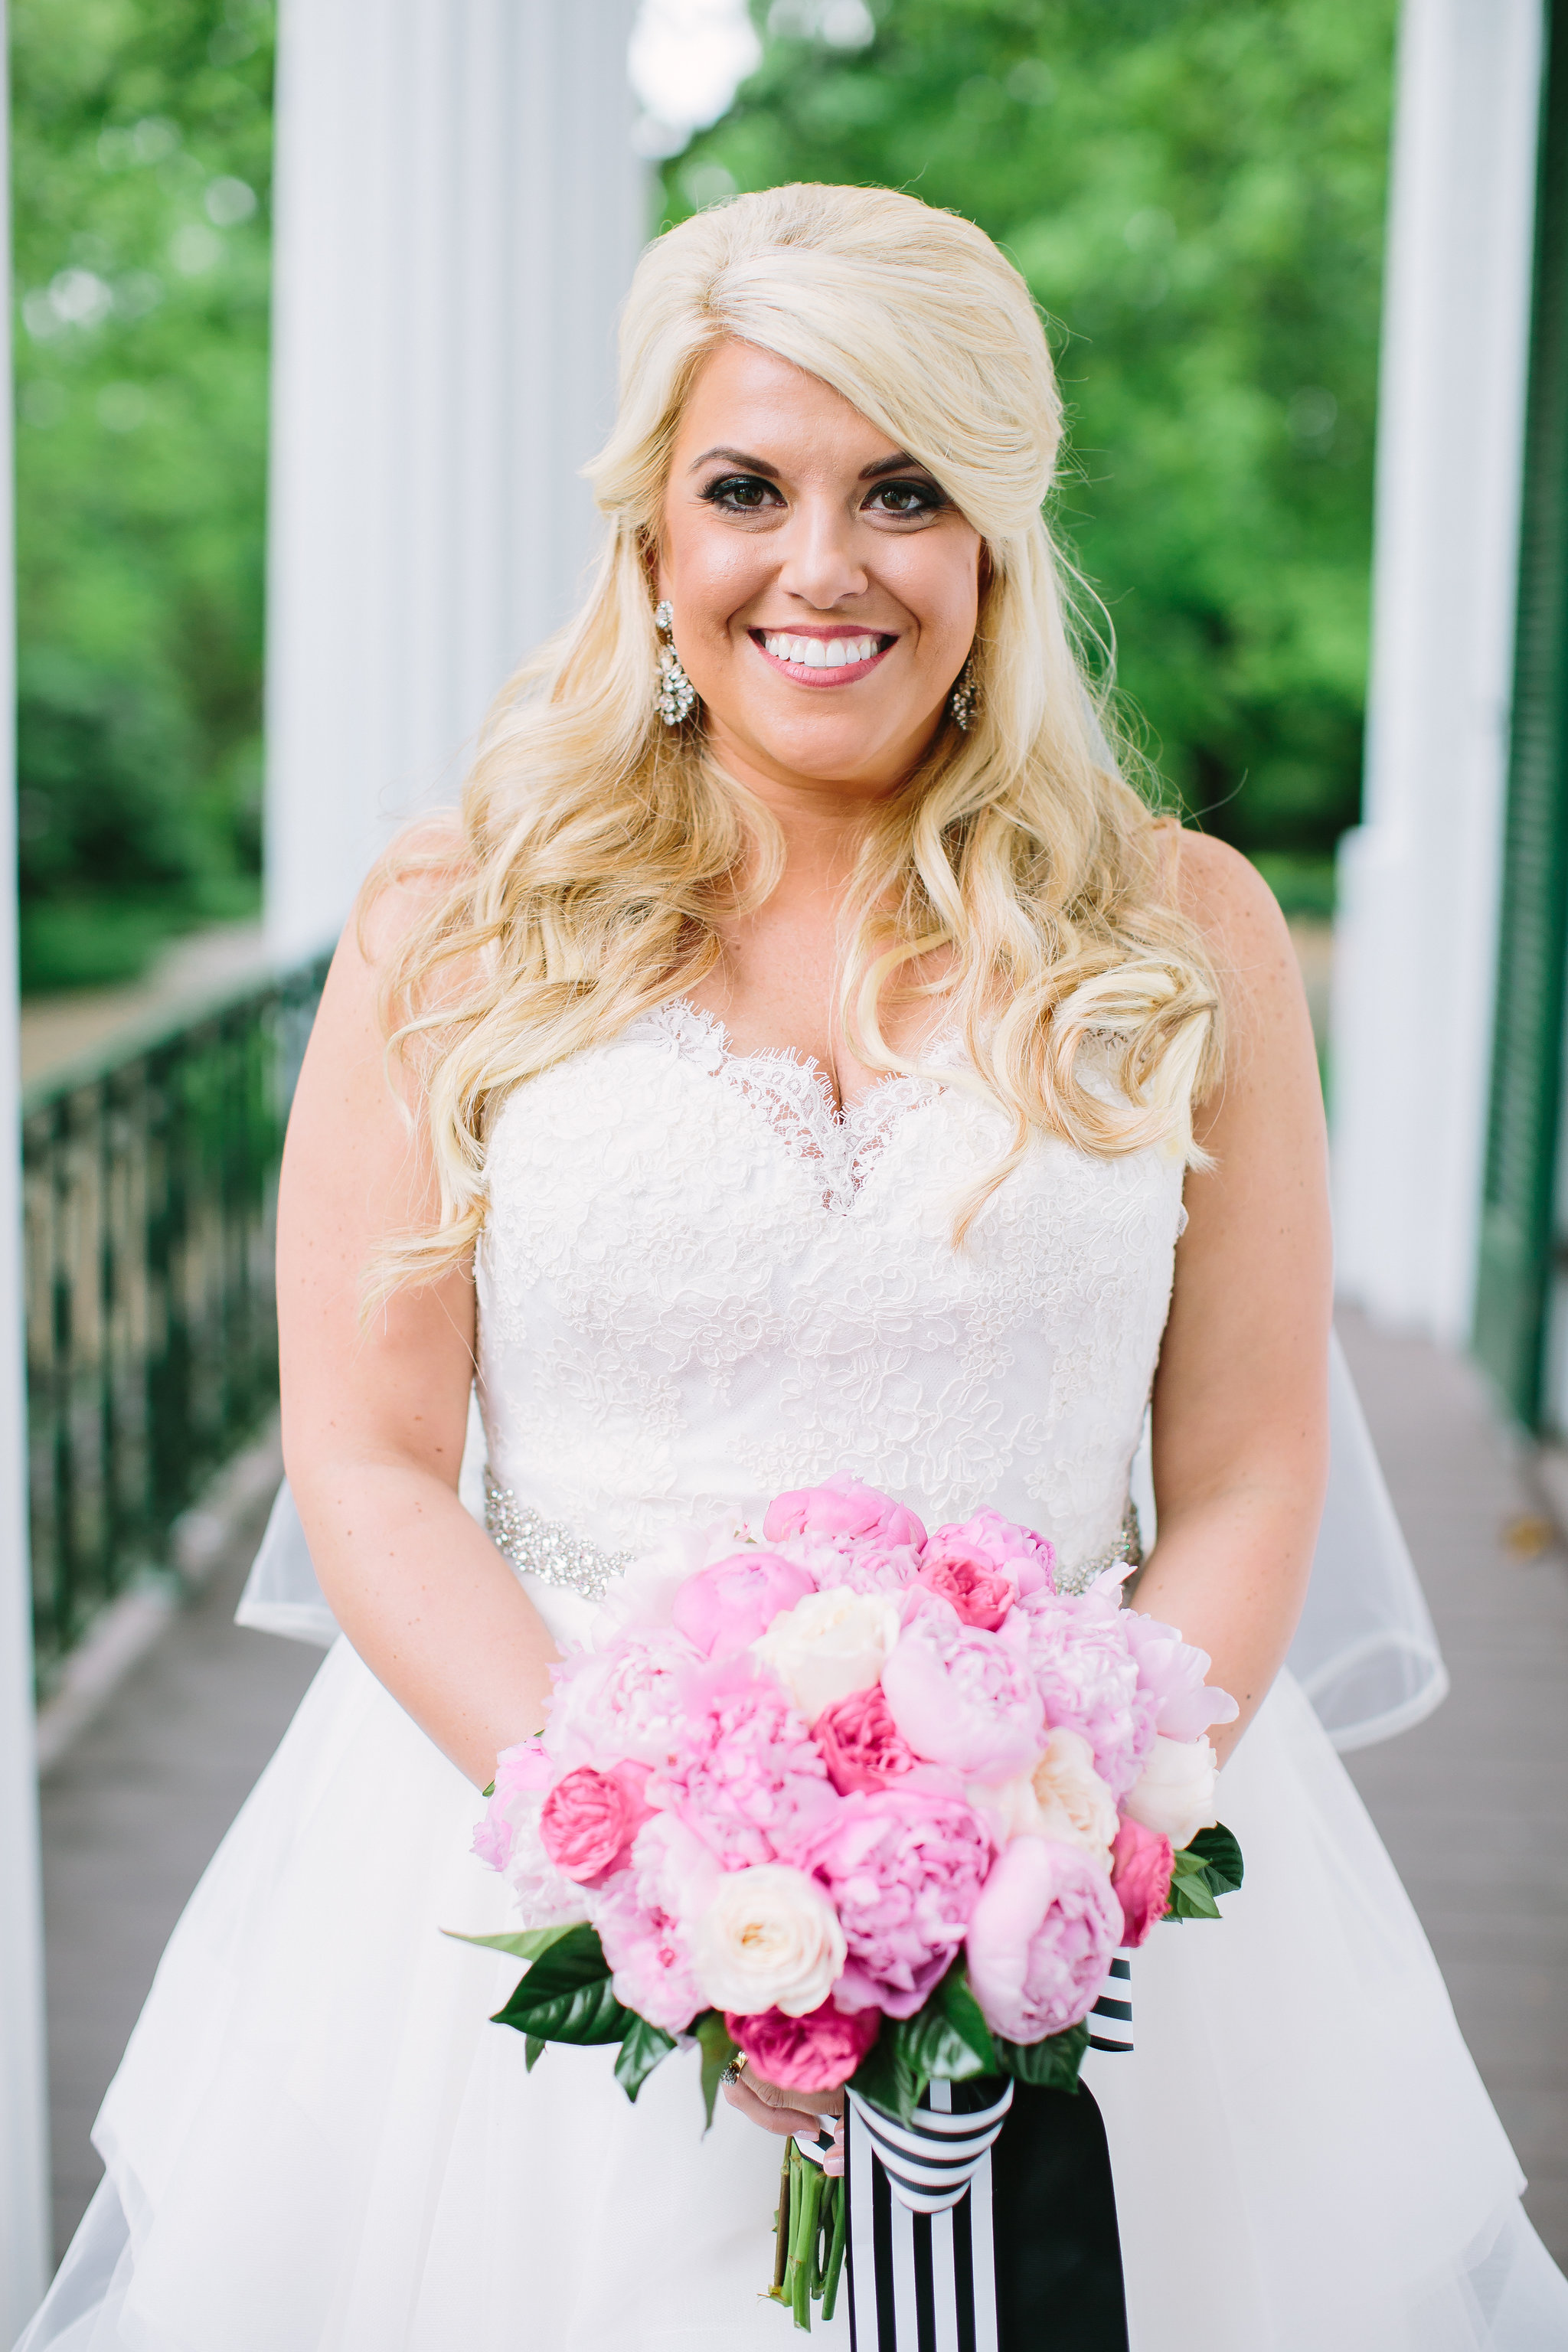 southern wedding with bright florals and black and white stripes.